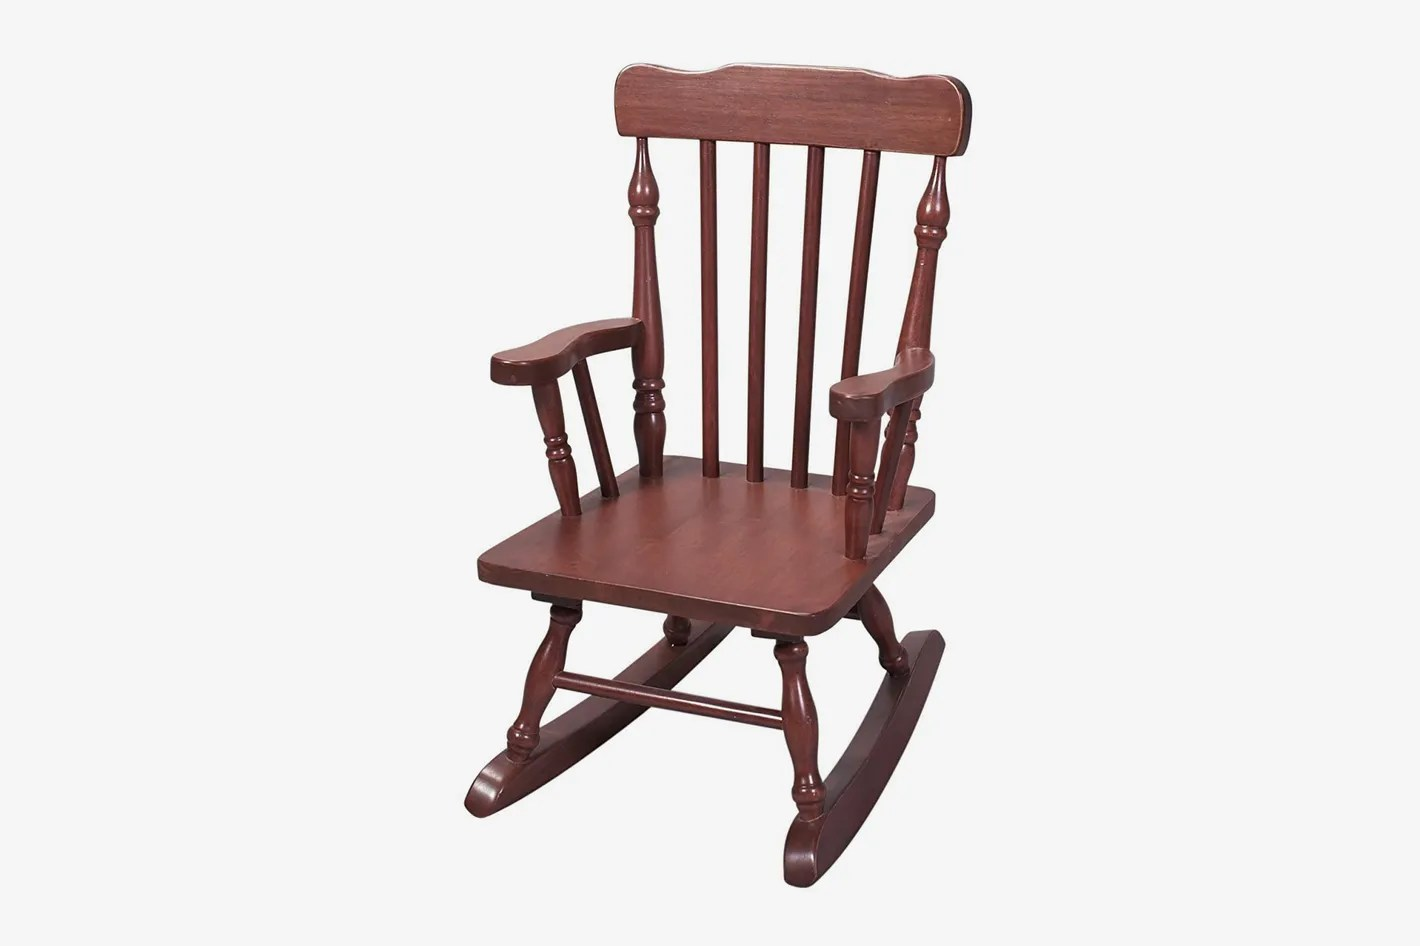 Child Wooden Rocking Chair 10 Best Rocking Chairs 2019